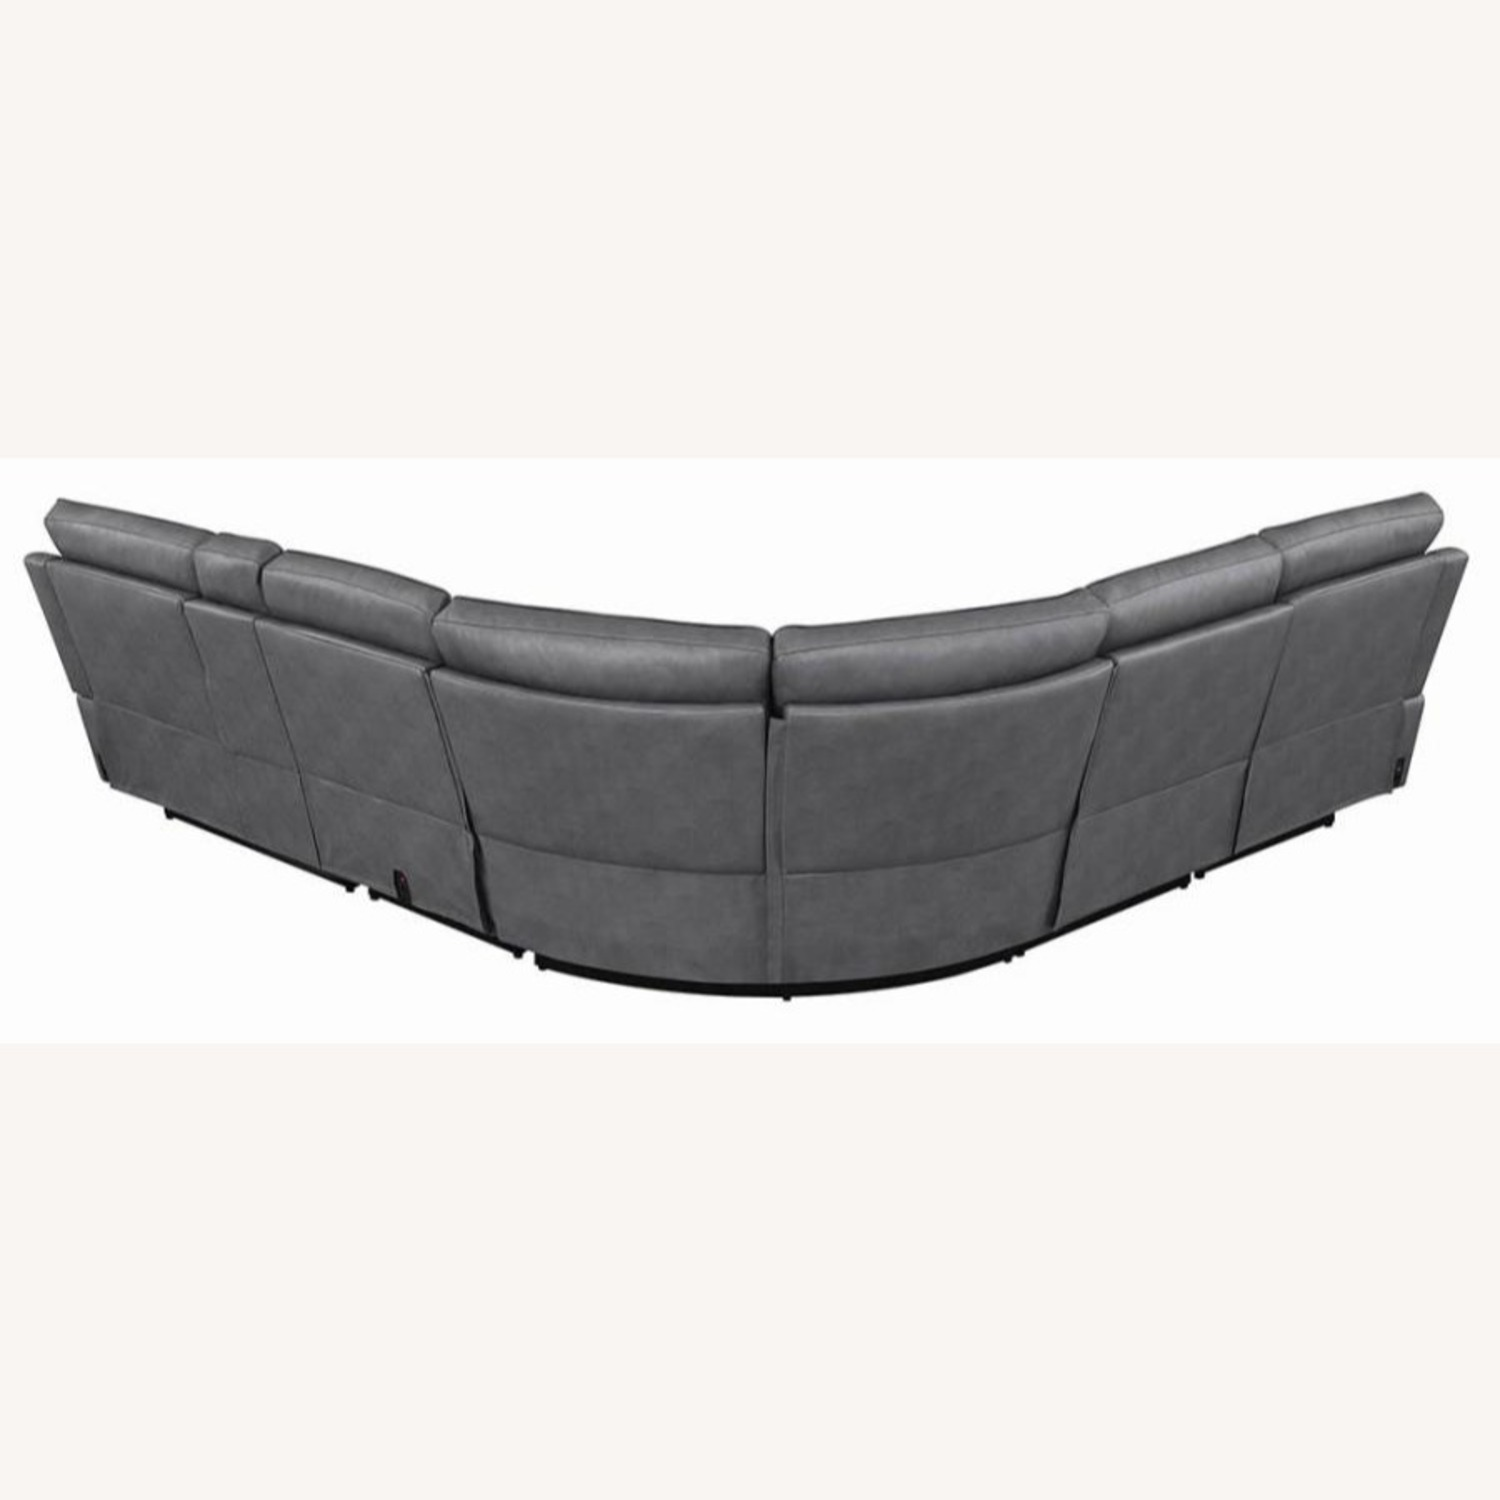 6-Piece Power2 Sectional In Grey Leatherette - image-6